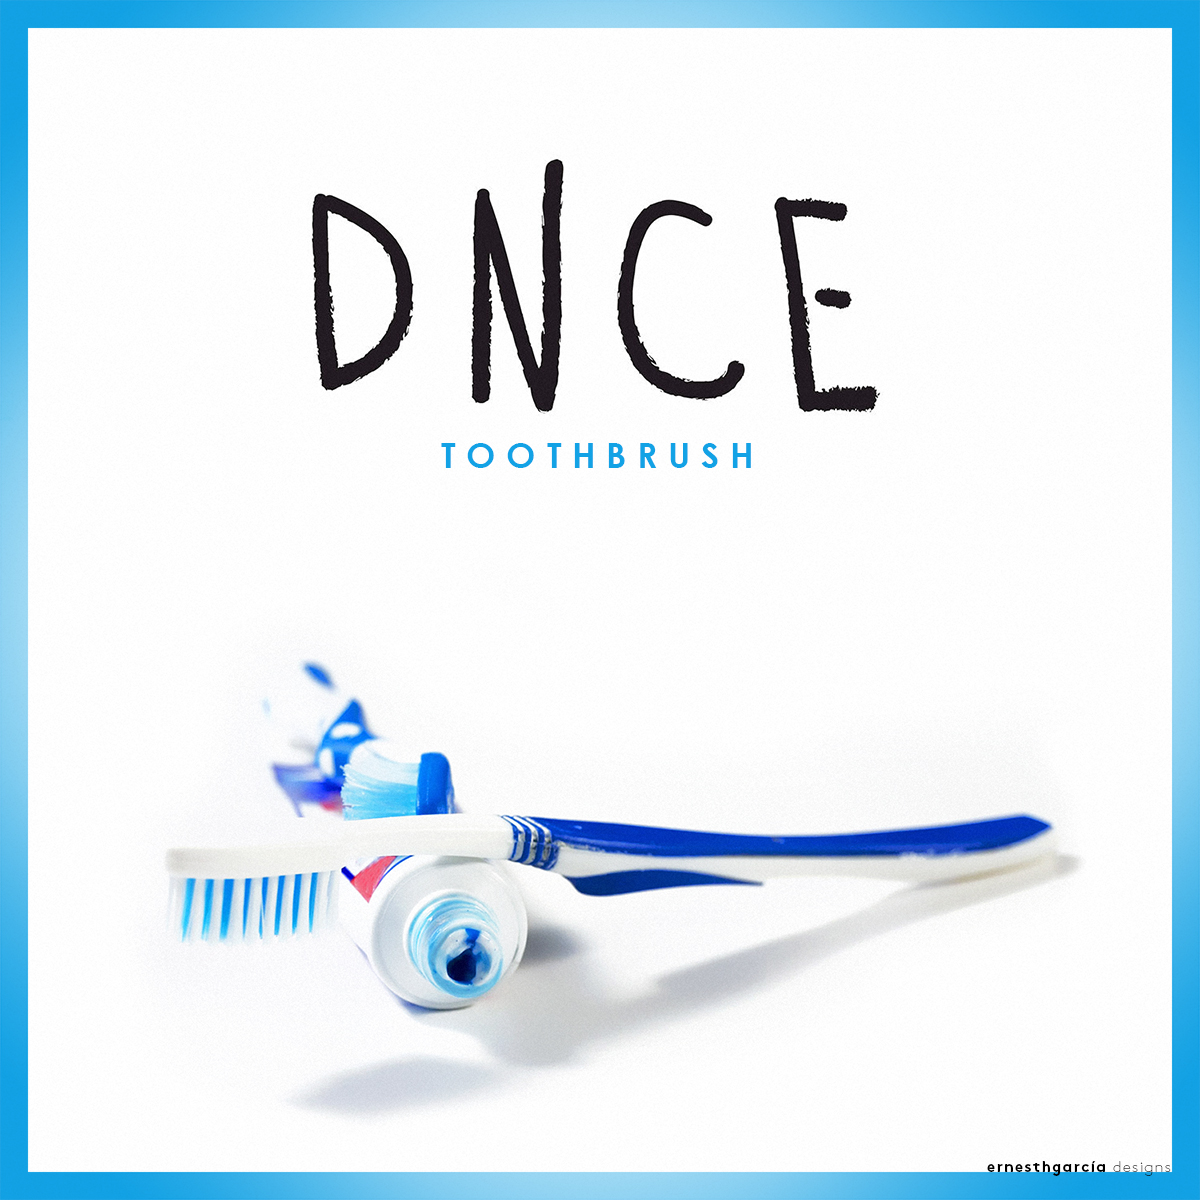 Dnce toothbrush ernesth garcia